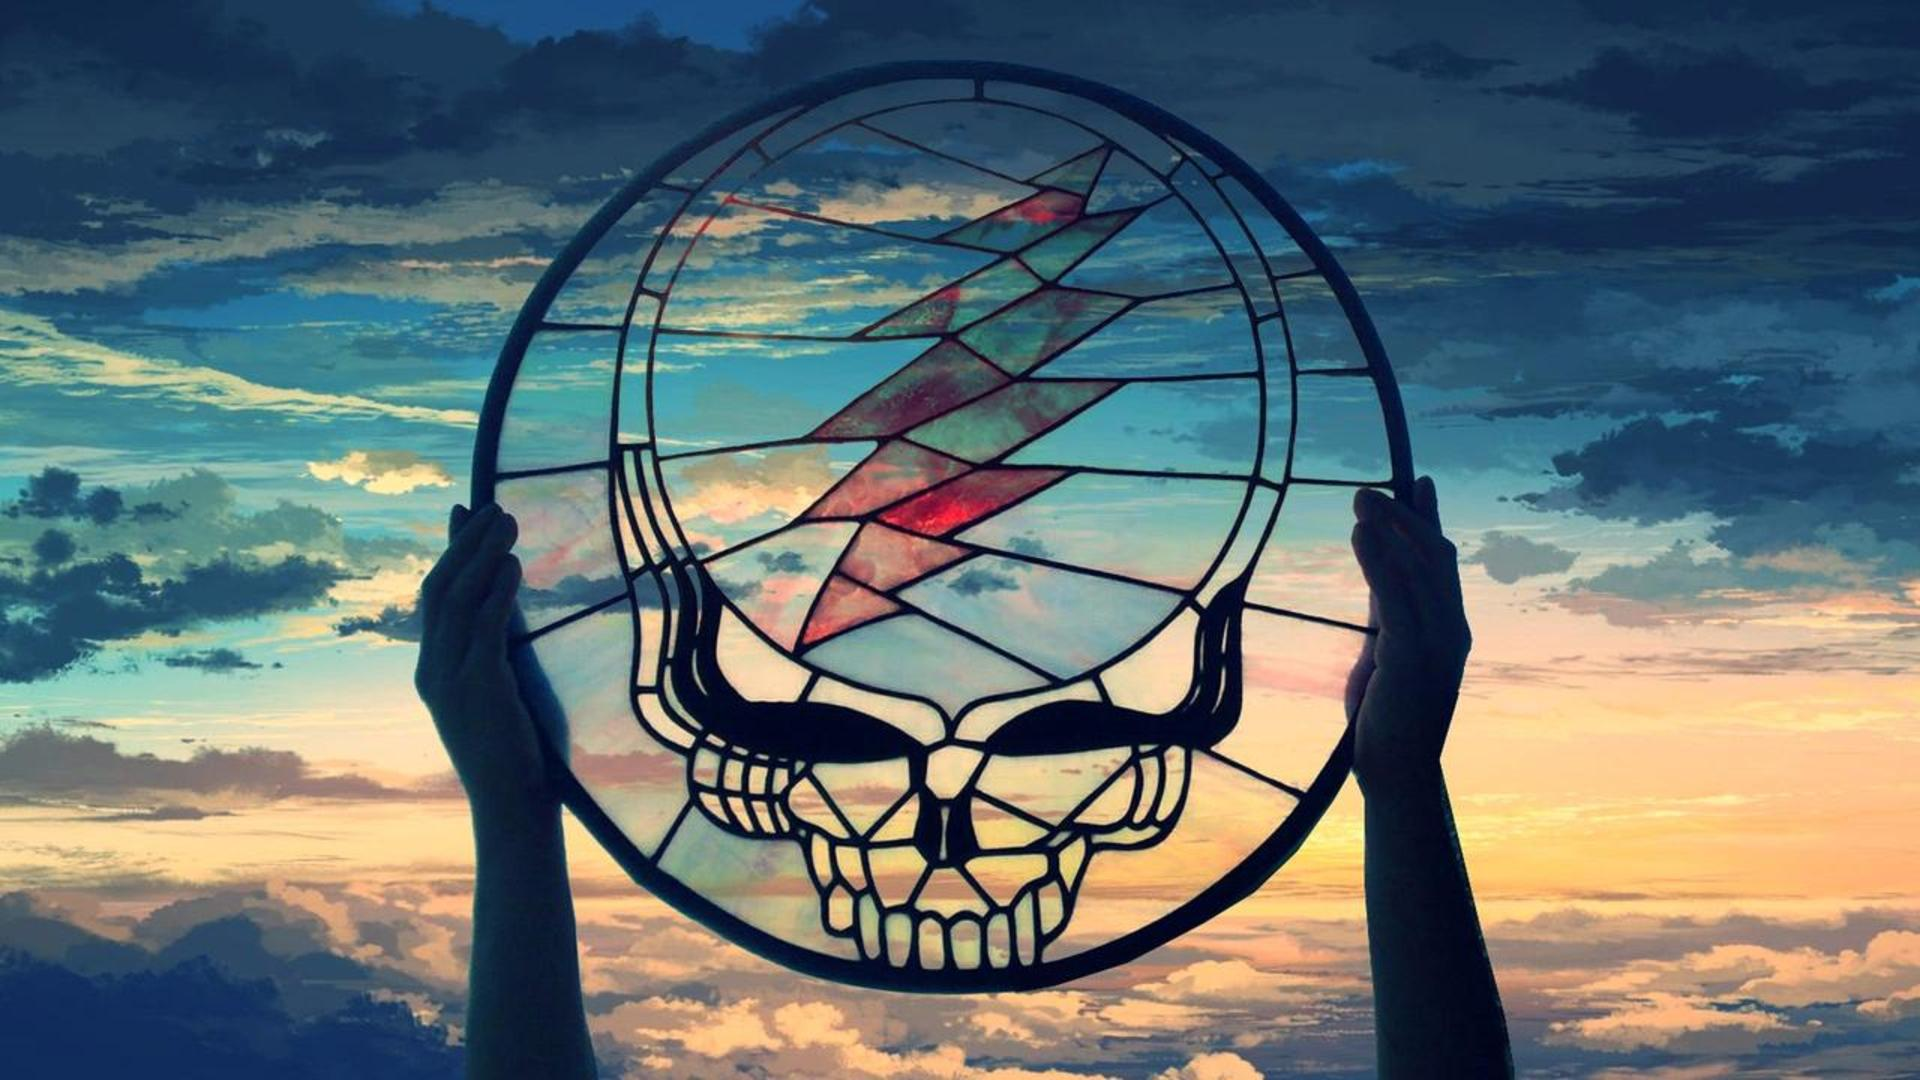 Grateful Dead Stained Glass Stealie over Painted Sky[1920x1080 1920x1080